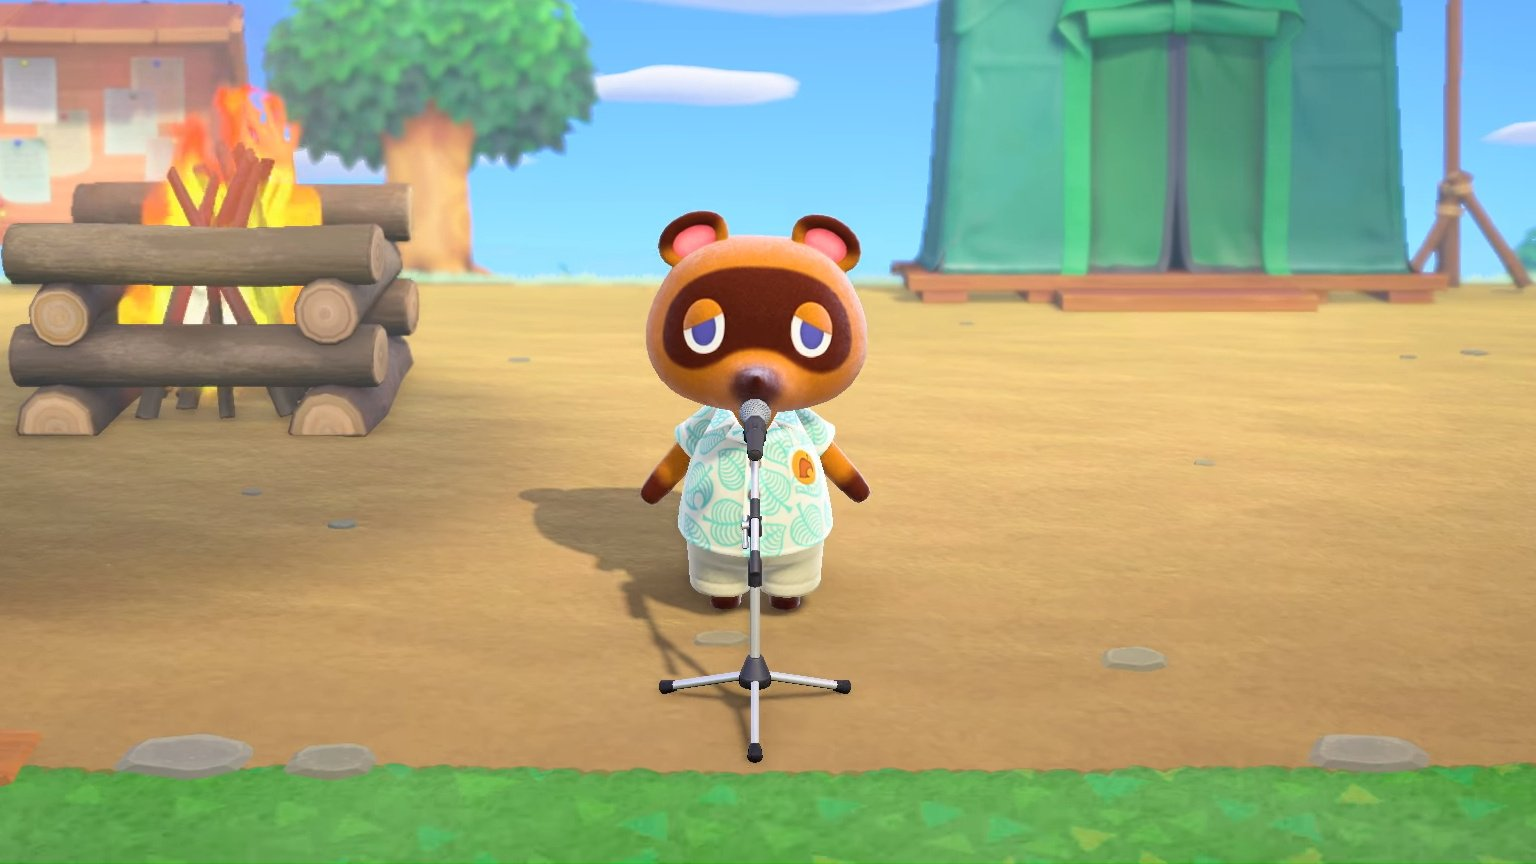 'Animal Crossing' update to add new seasonal events, art merchant